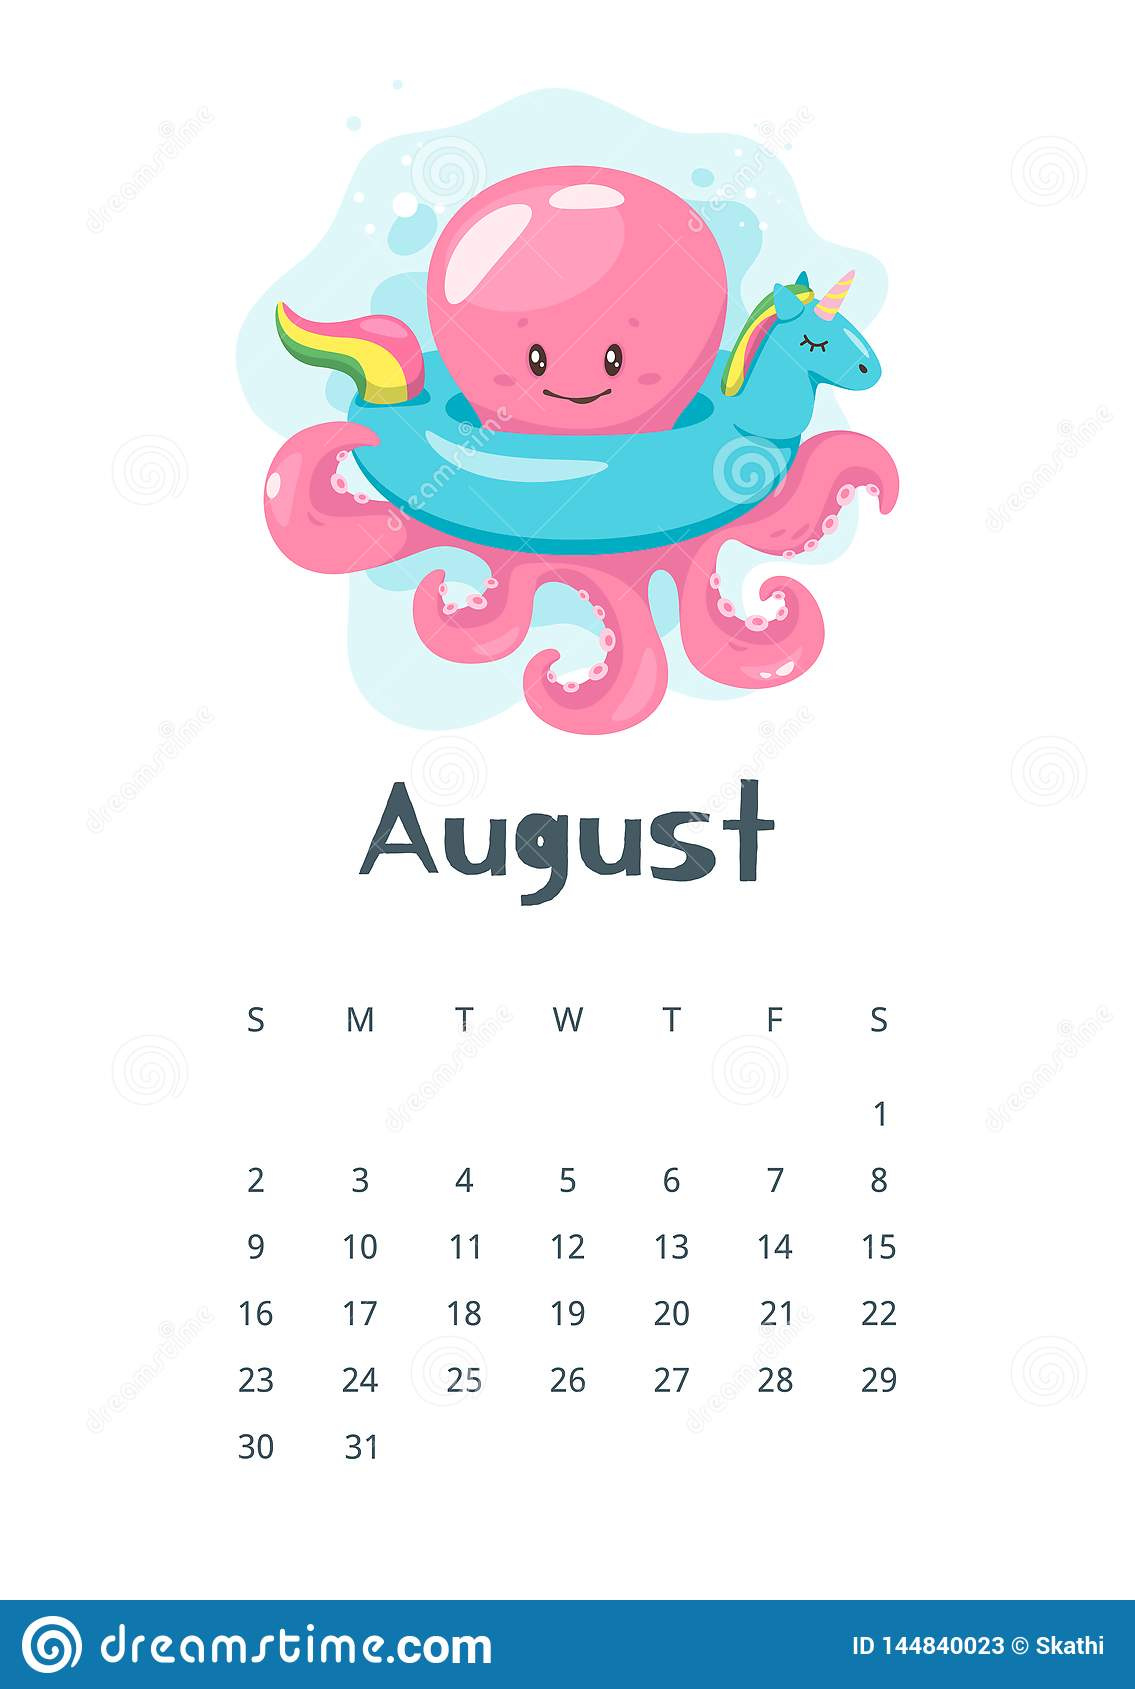 Oc Calendar 2020 2020 calendar page. stock vector. Illustration of octopus   144840023